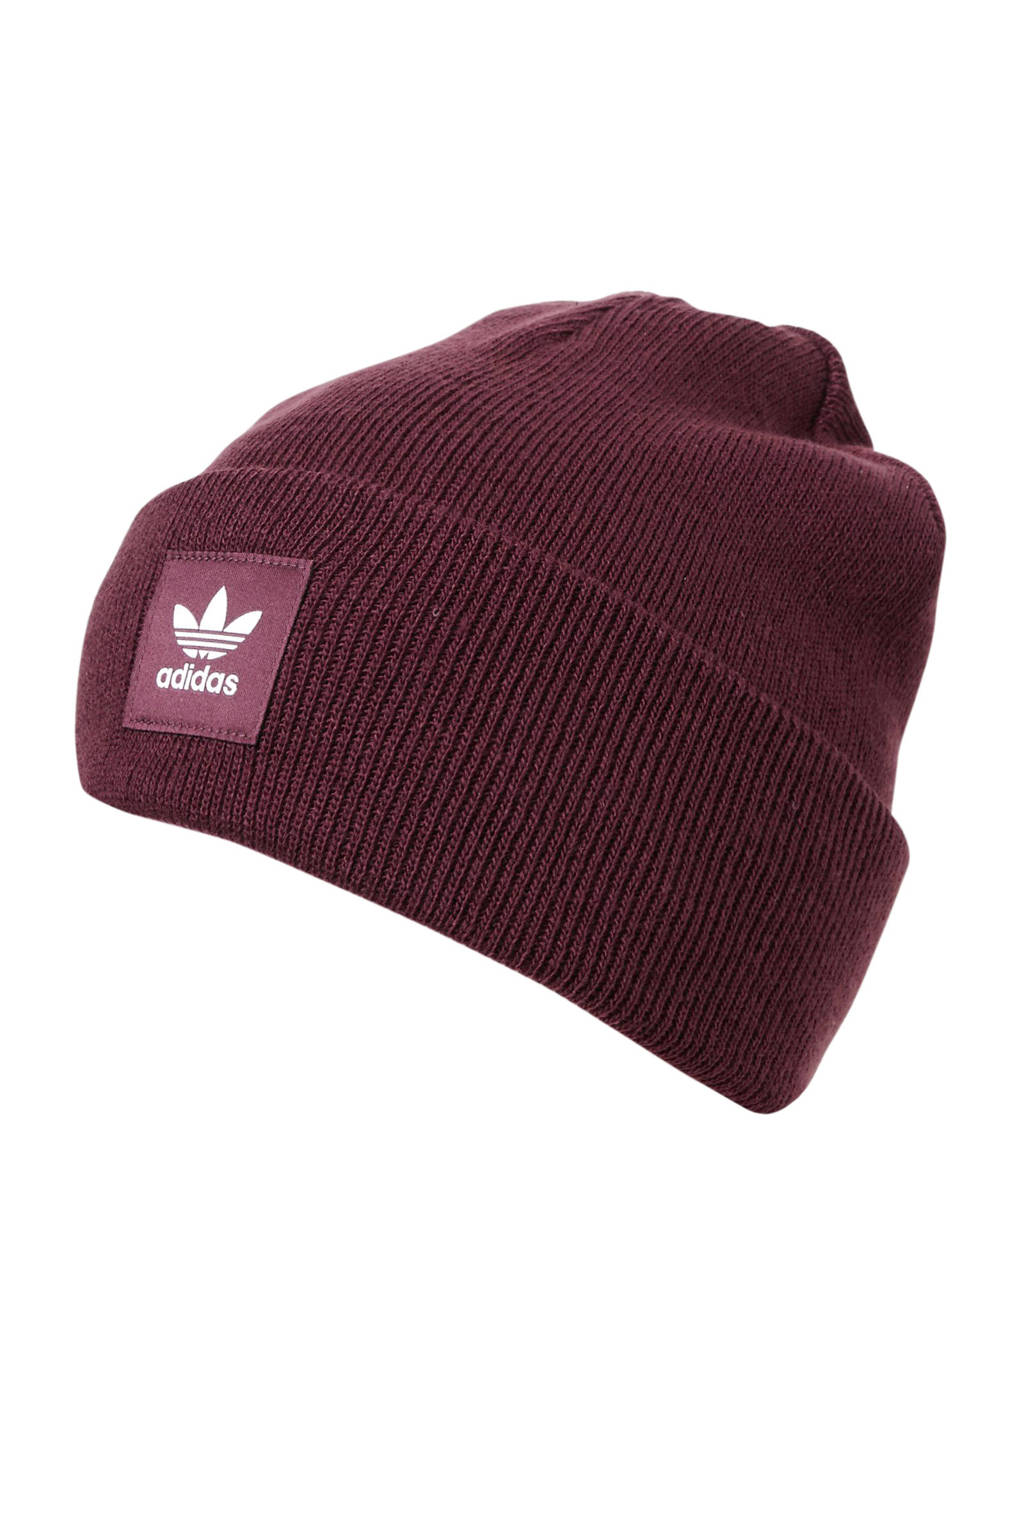 adidas originals muts bordeauxrood, Bordeauxrood